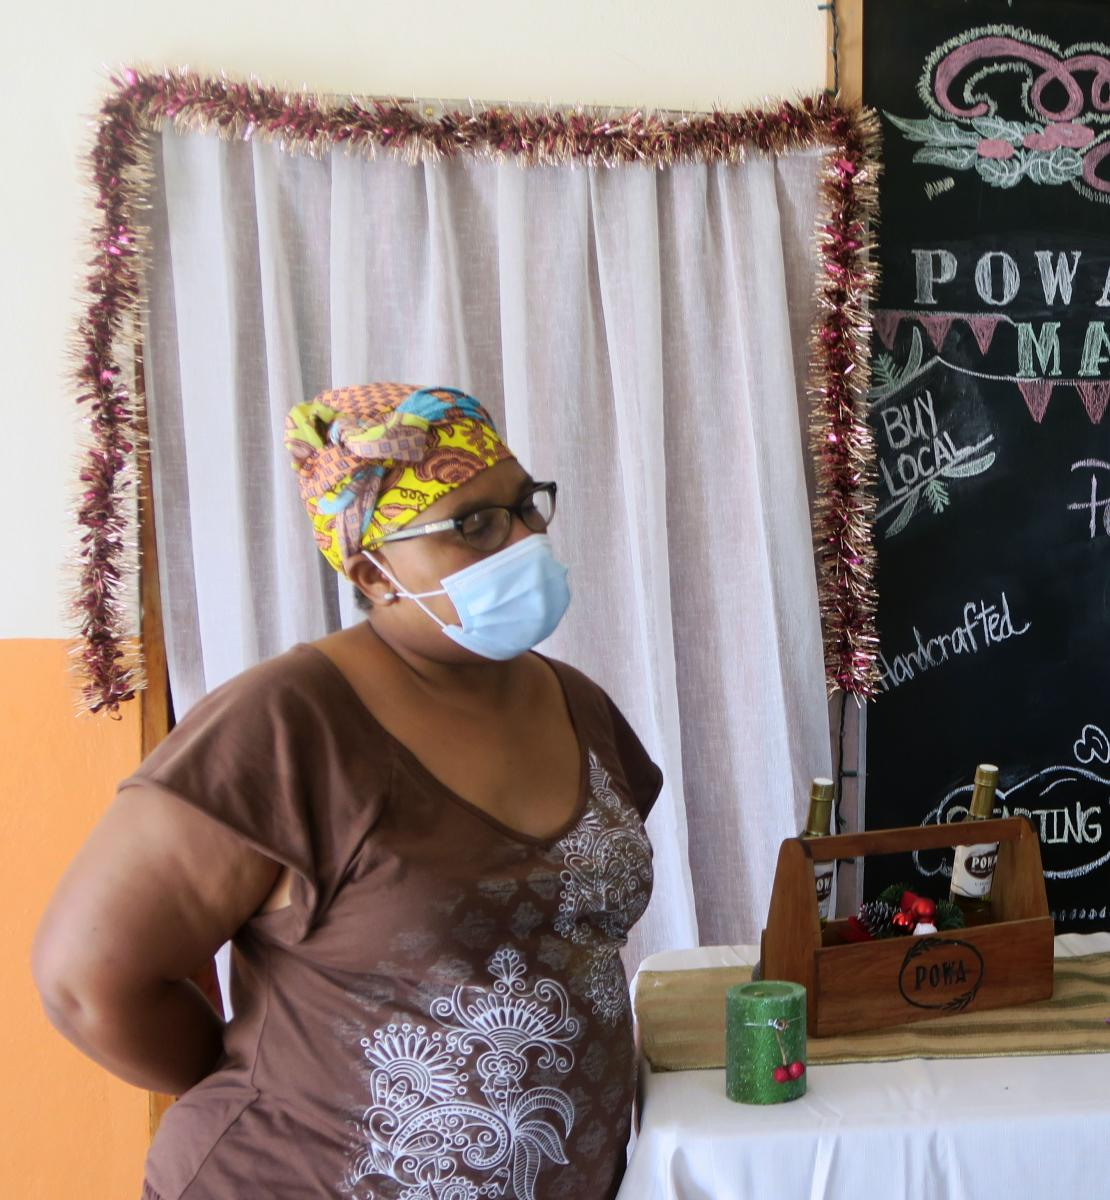 A woman wearing a face mask stands in front of her homemade oils and soaps at a POWA-sponsored market.